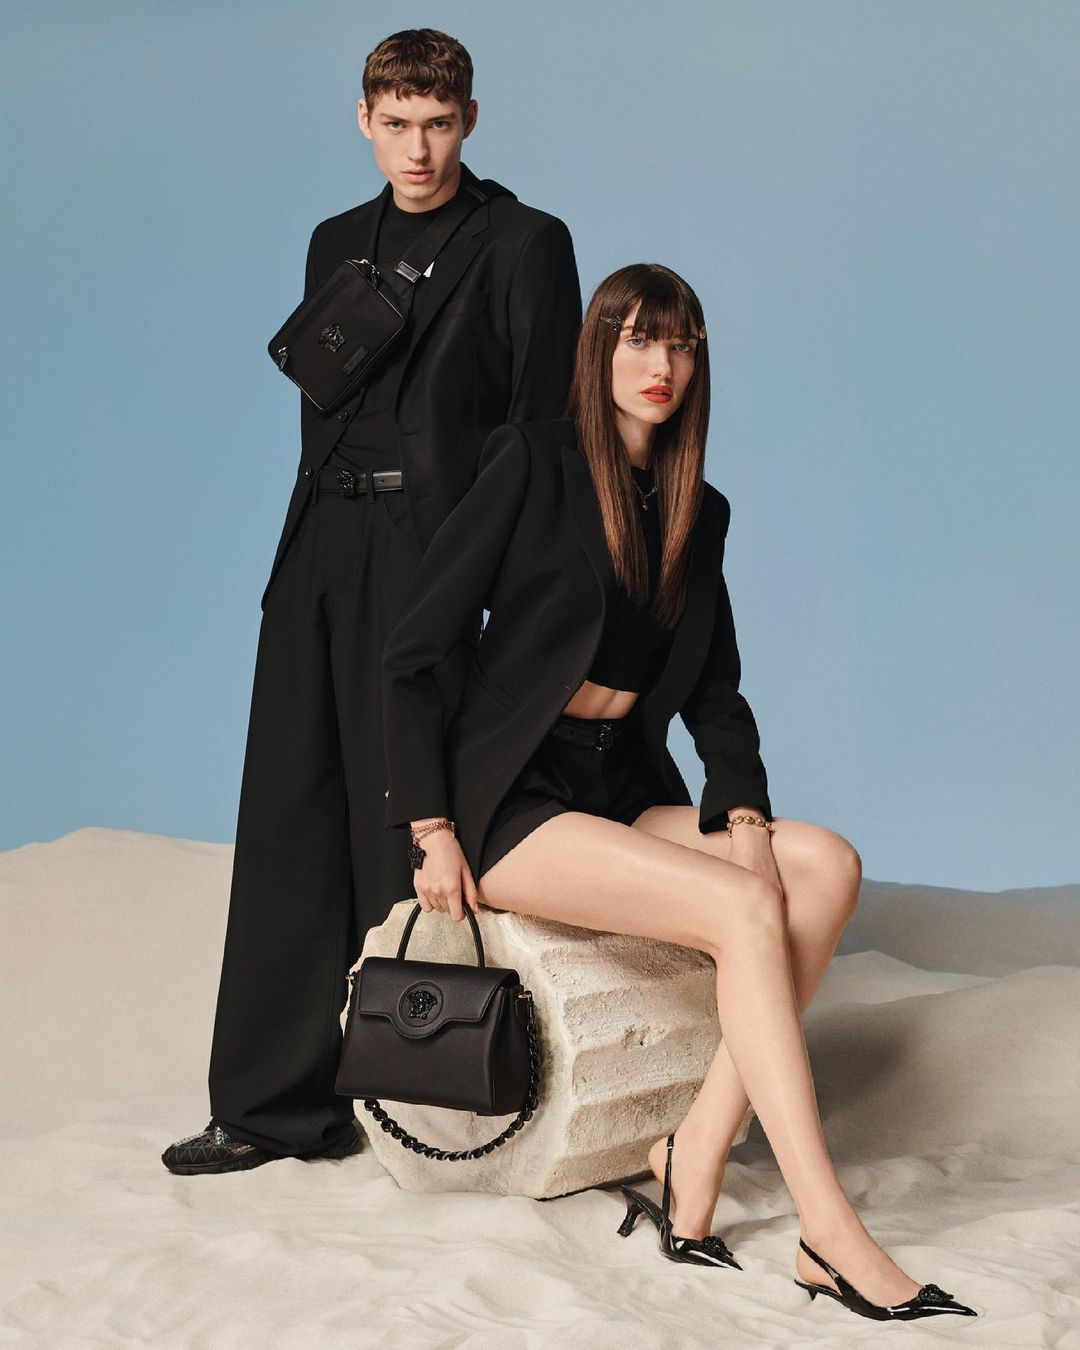 Hot seat - the #VersaceLaMedusa accessories line includes designs for him and her.